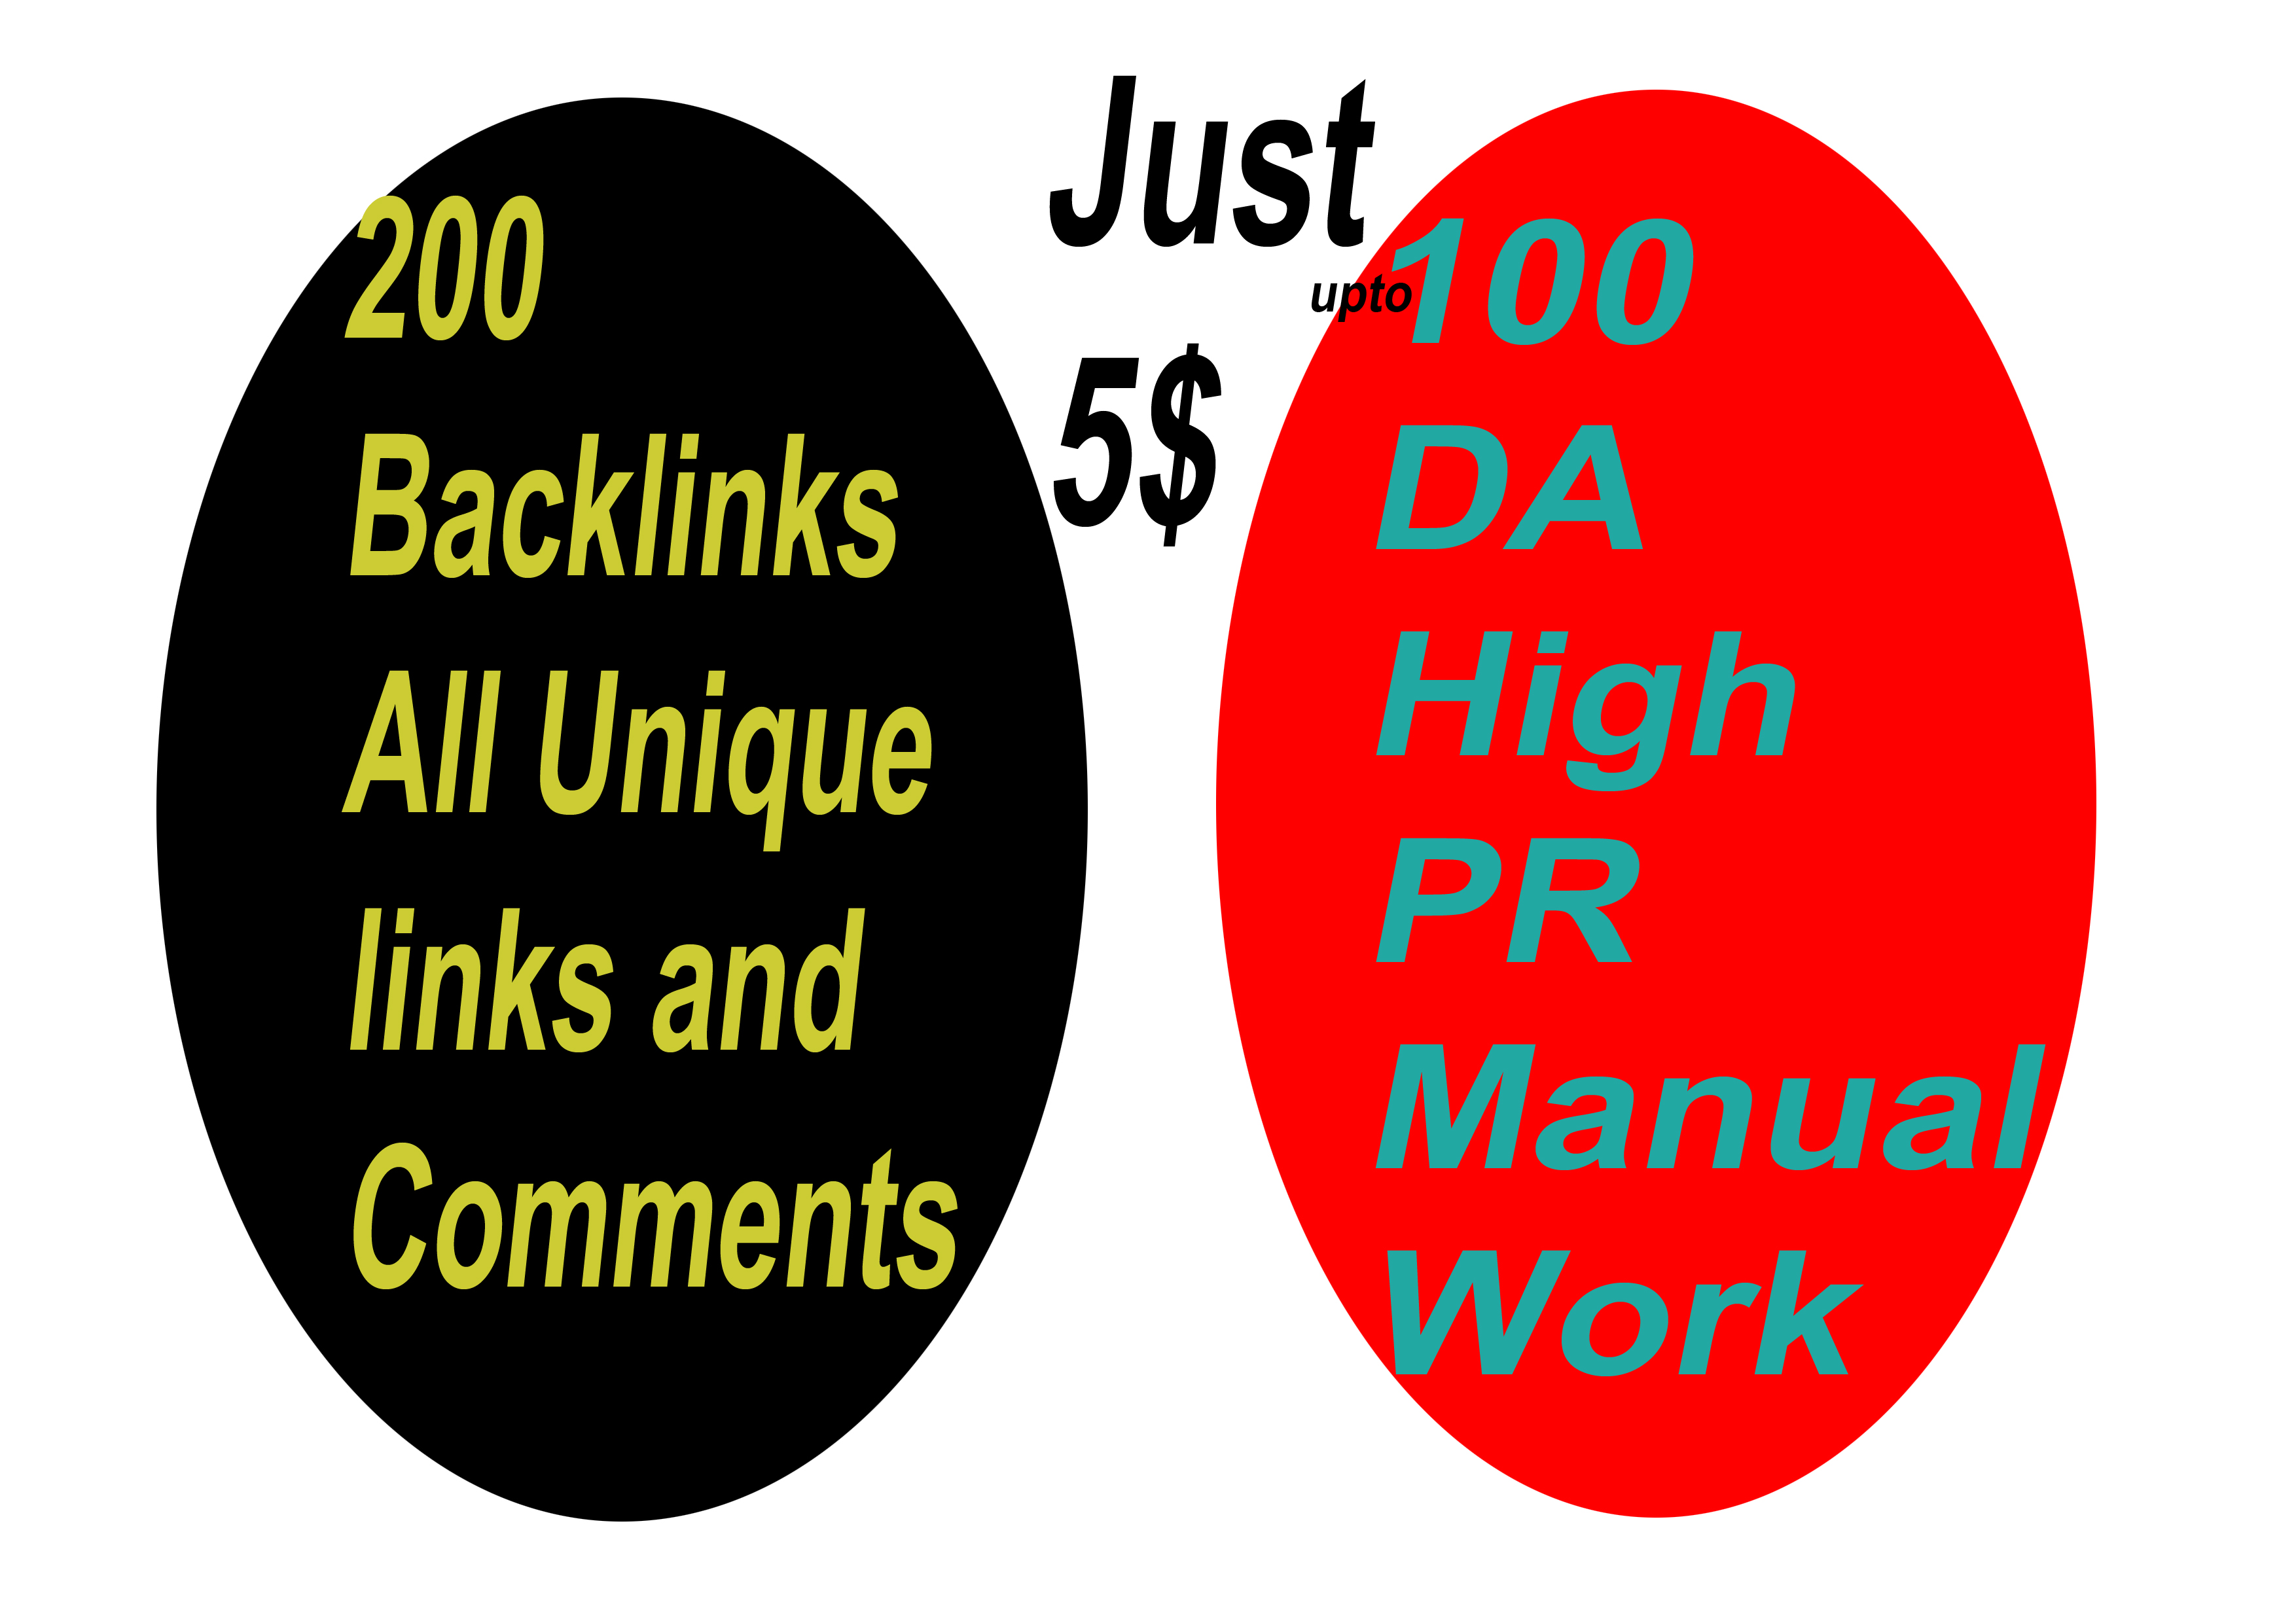 i will do 200 backlinks all unique links and comments on